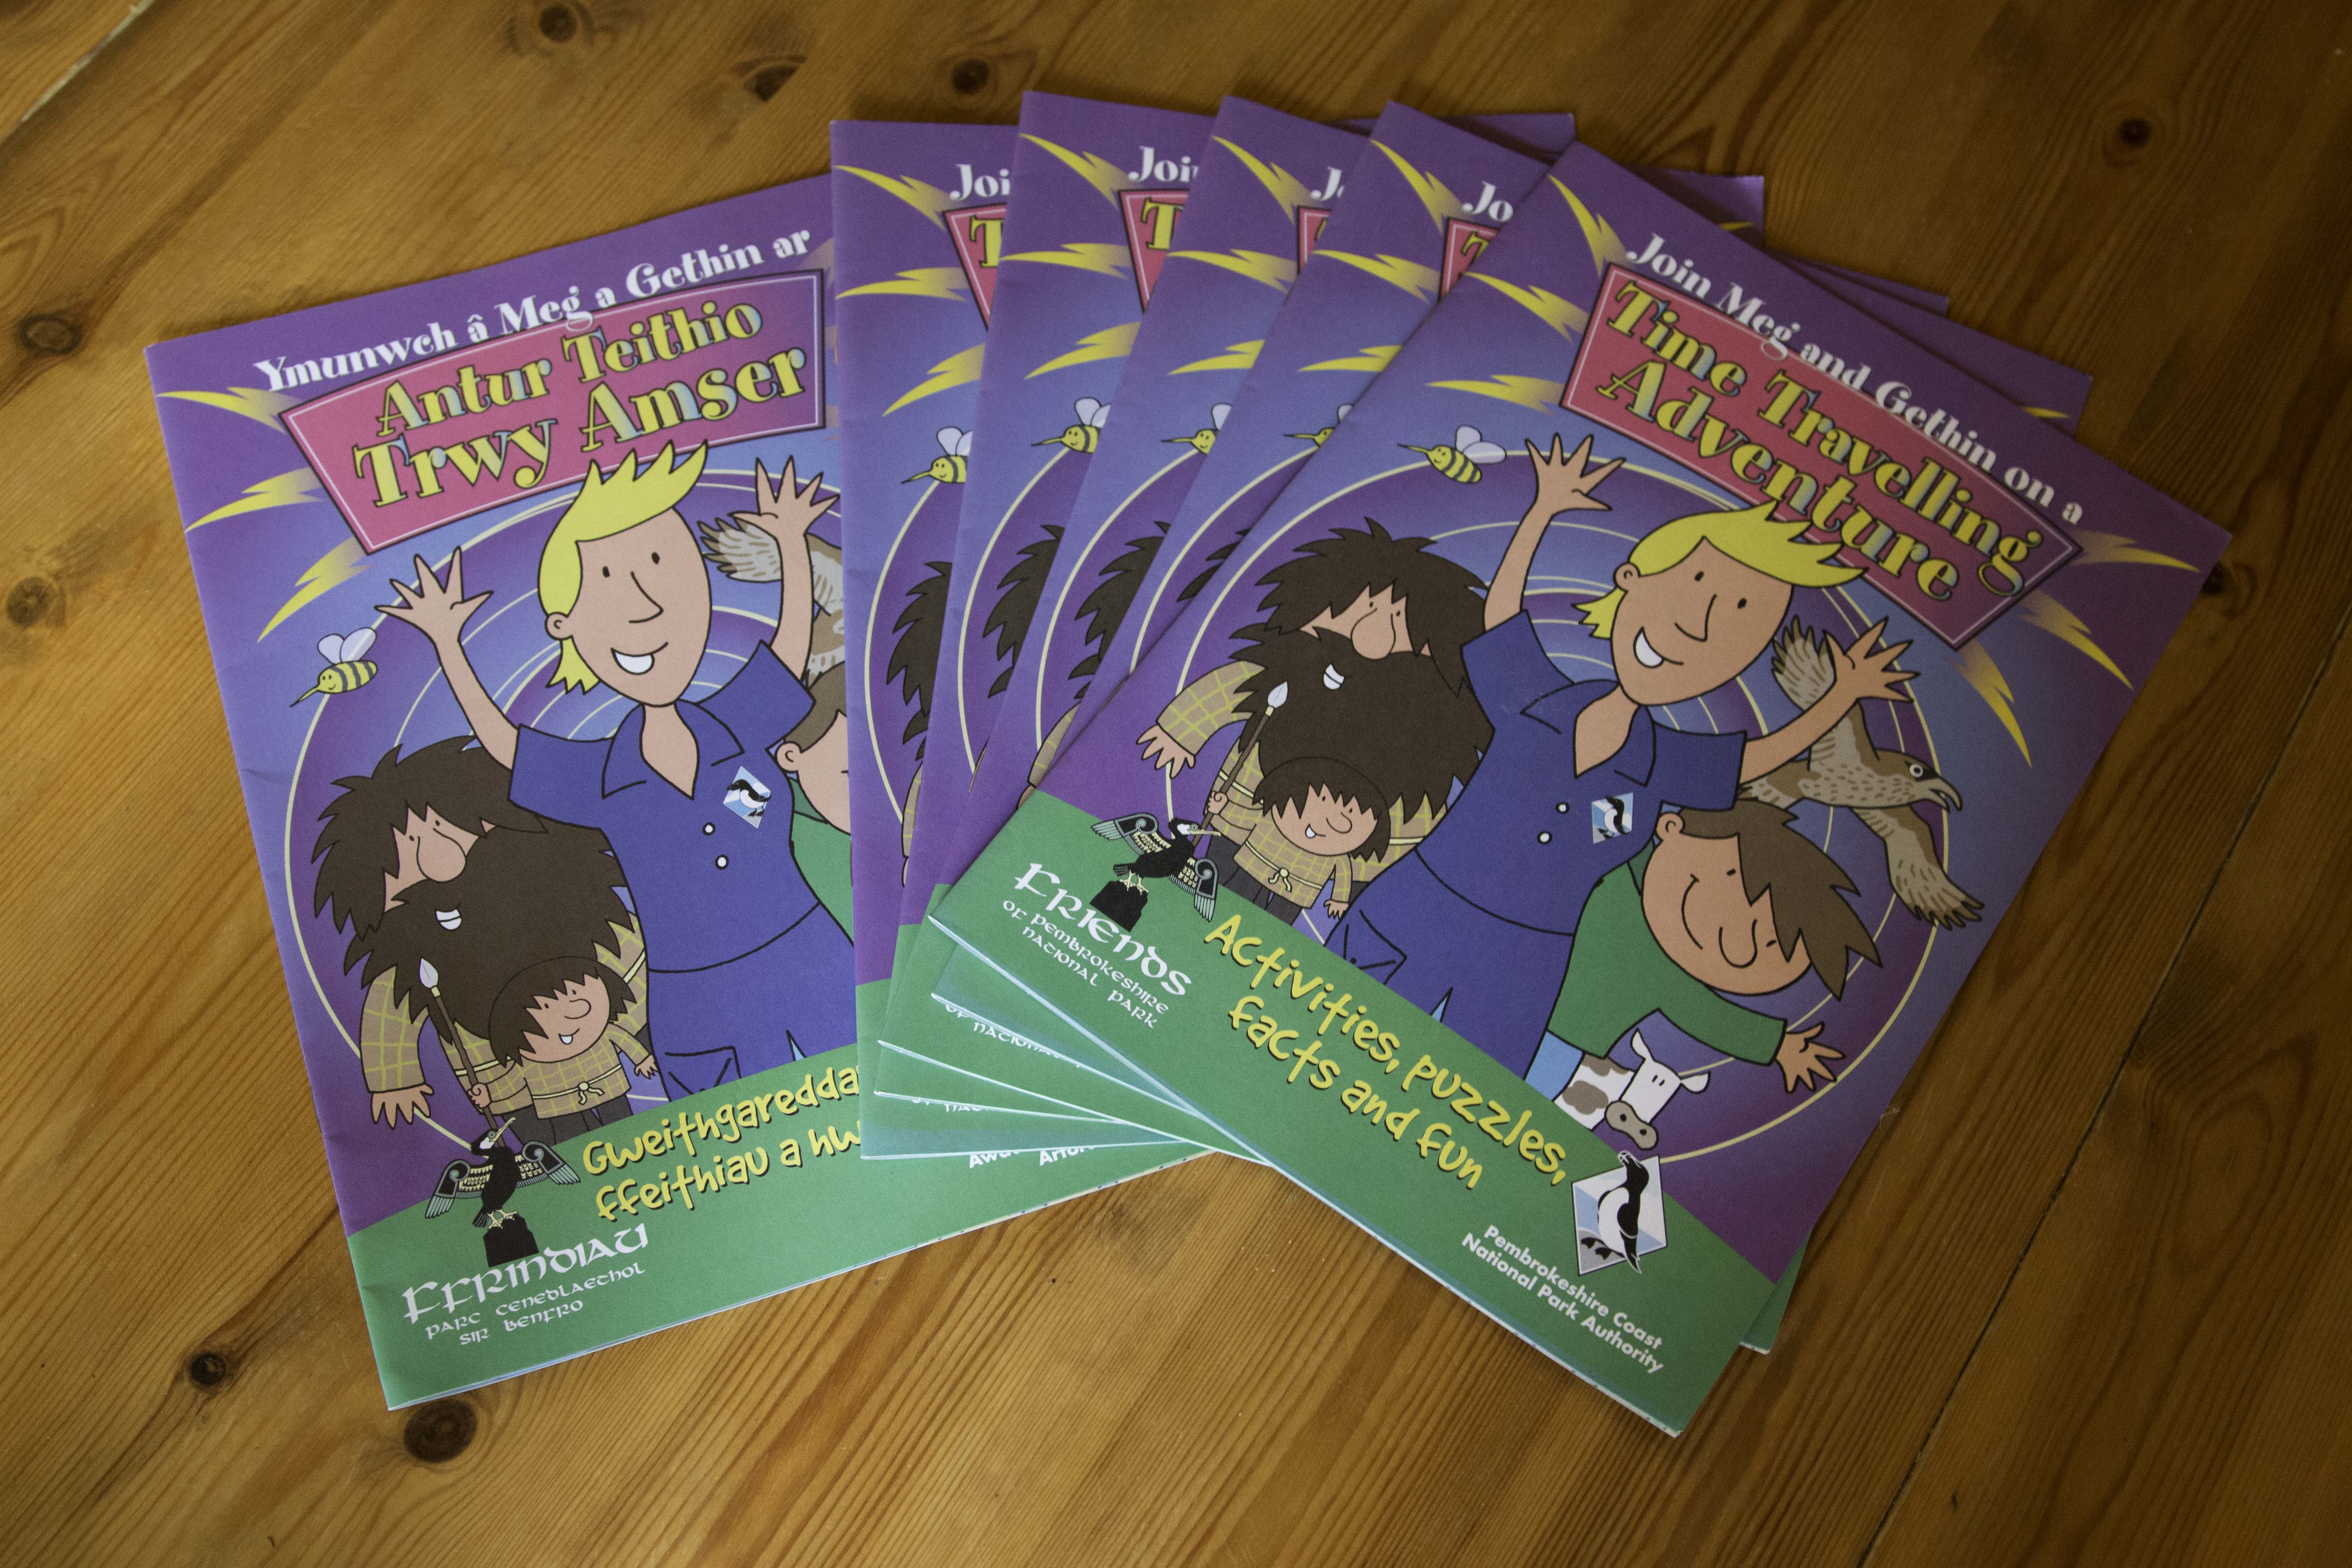 image of friends 'Meg and Gethin' booklets